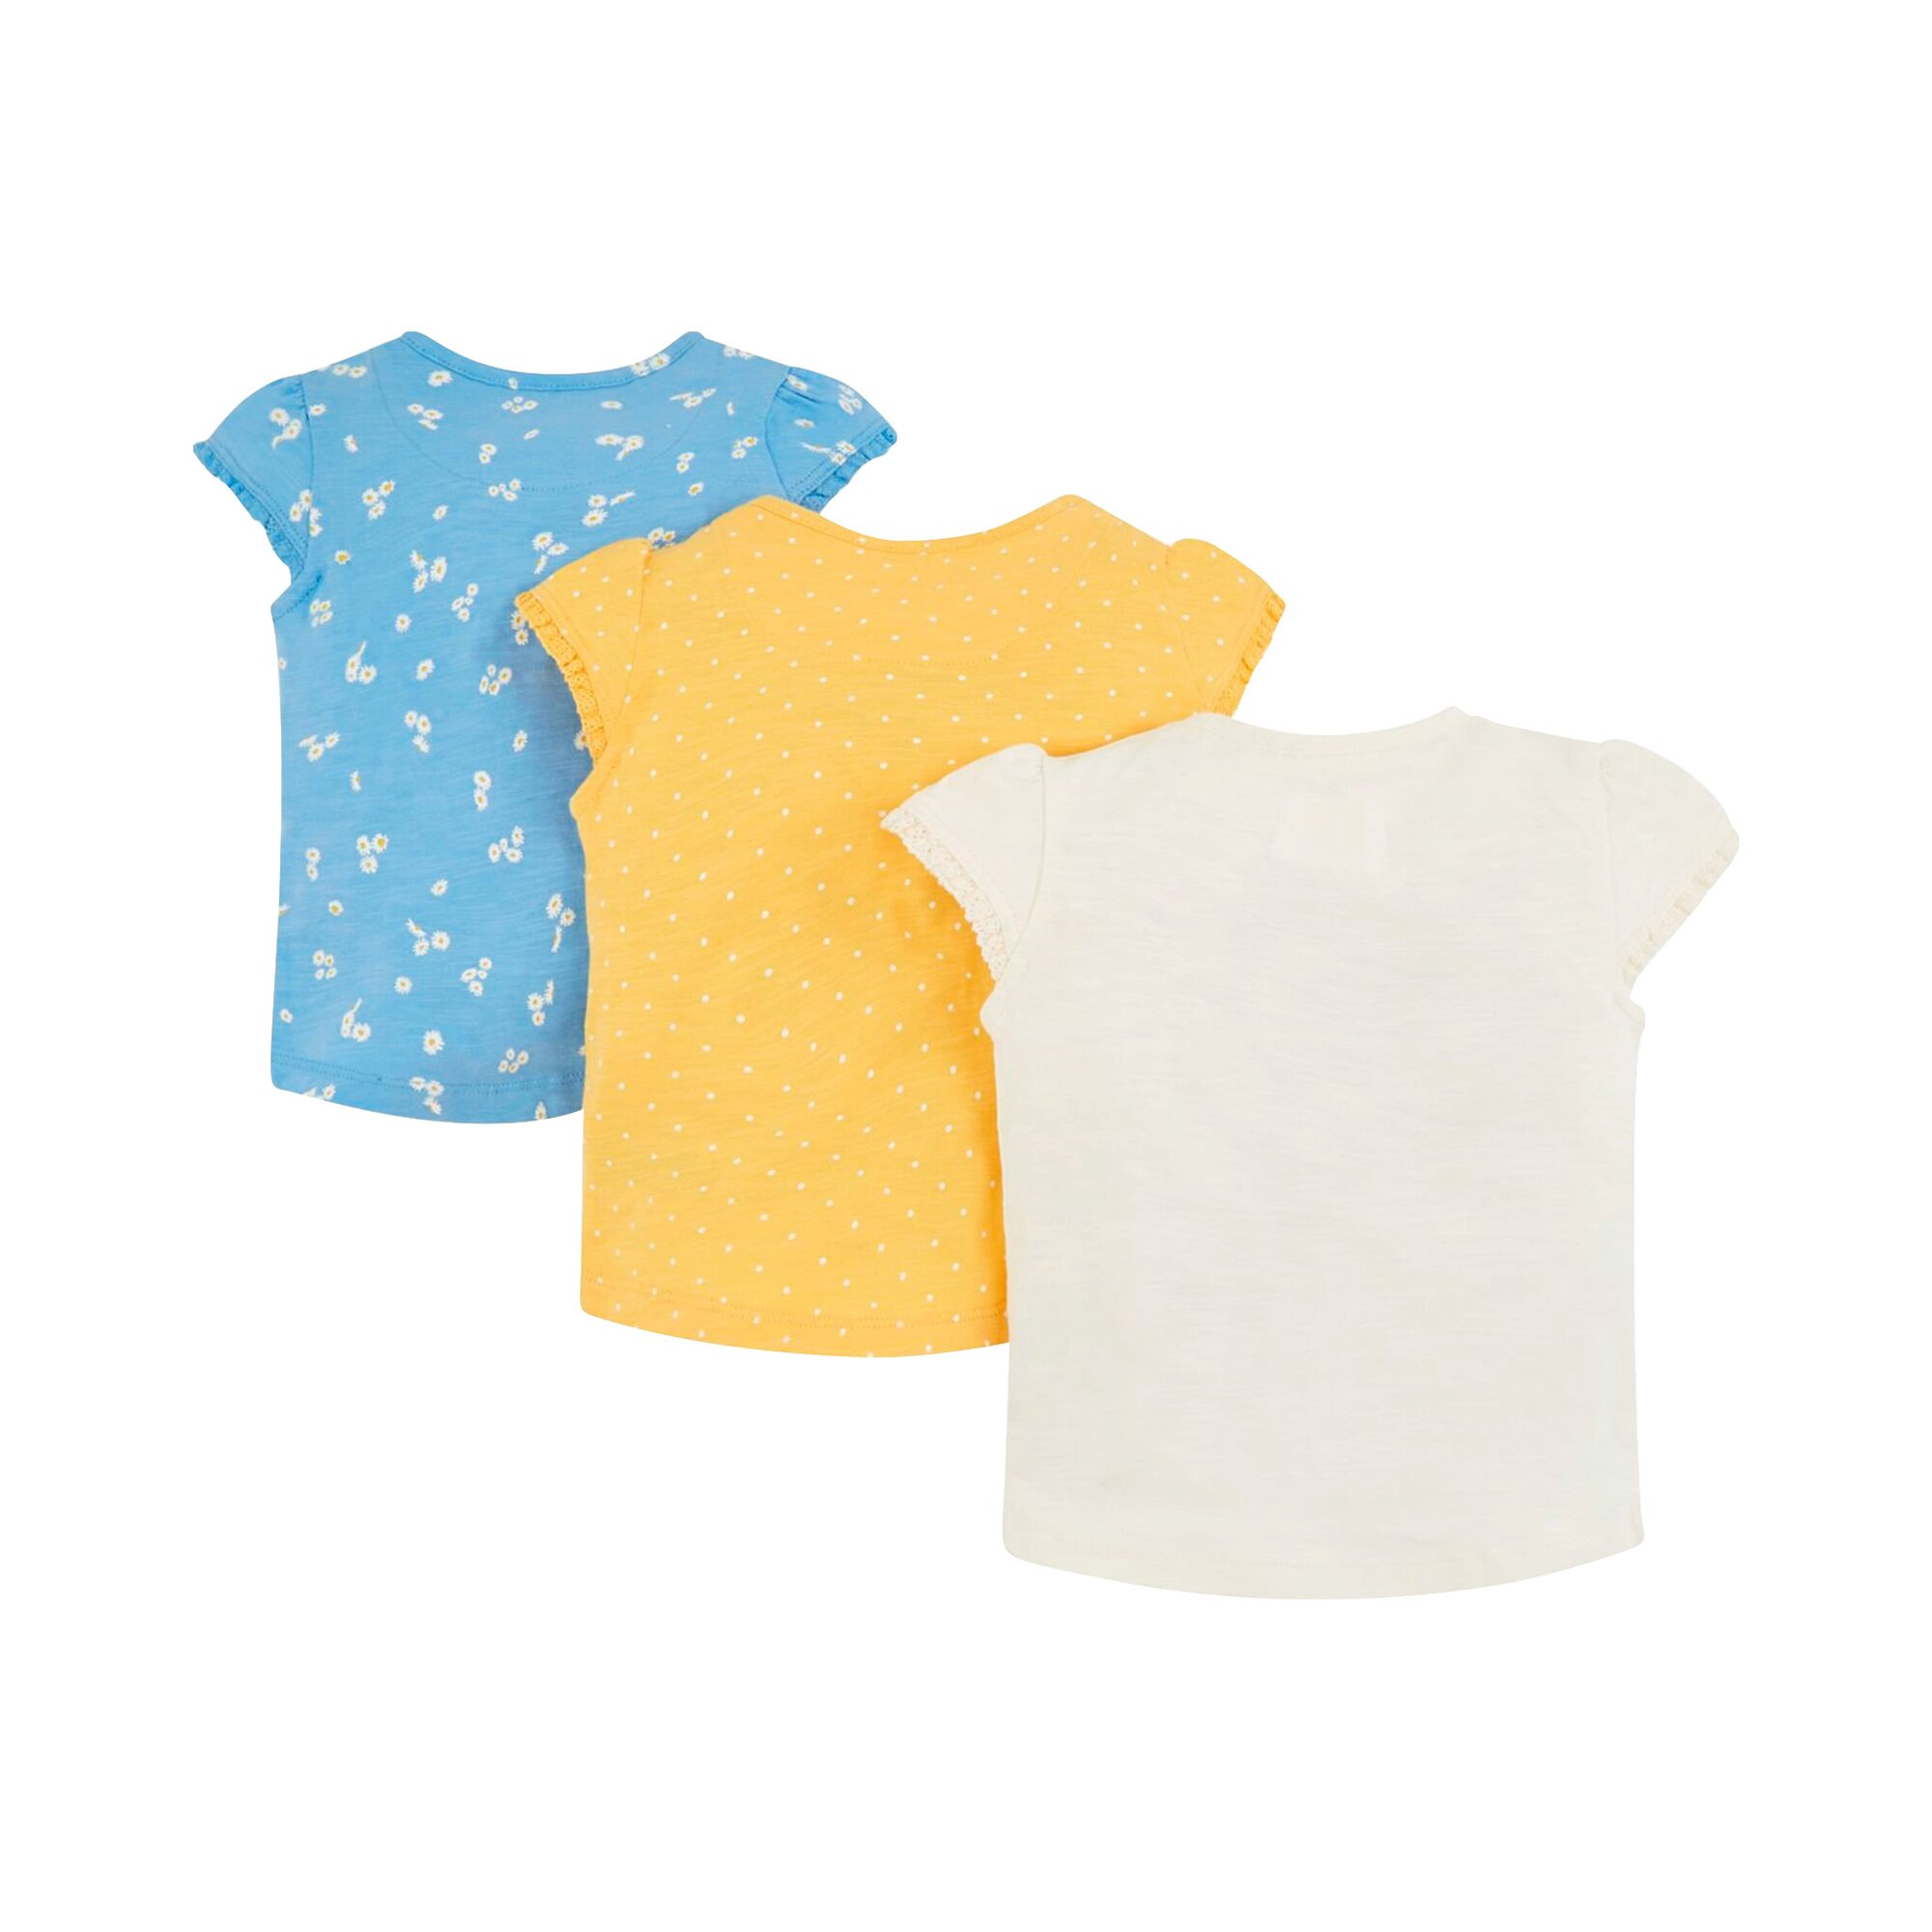 mothercare-3er-pack-t-shirts-madchen-punkte-blumen